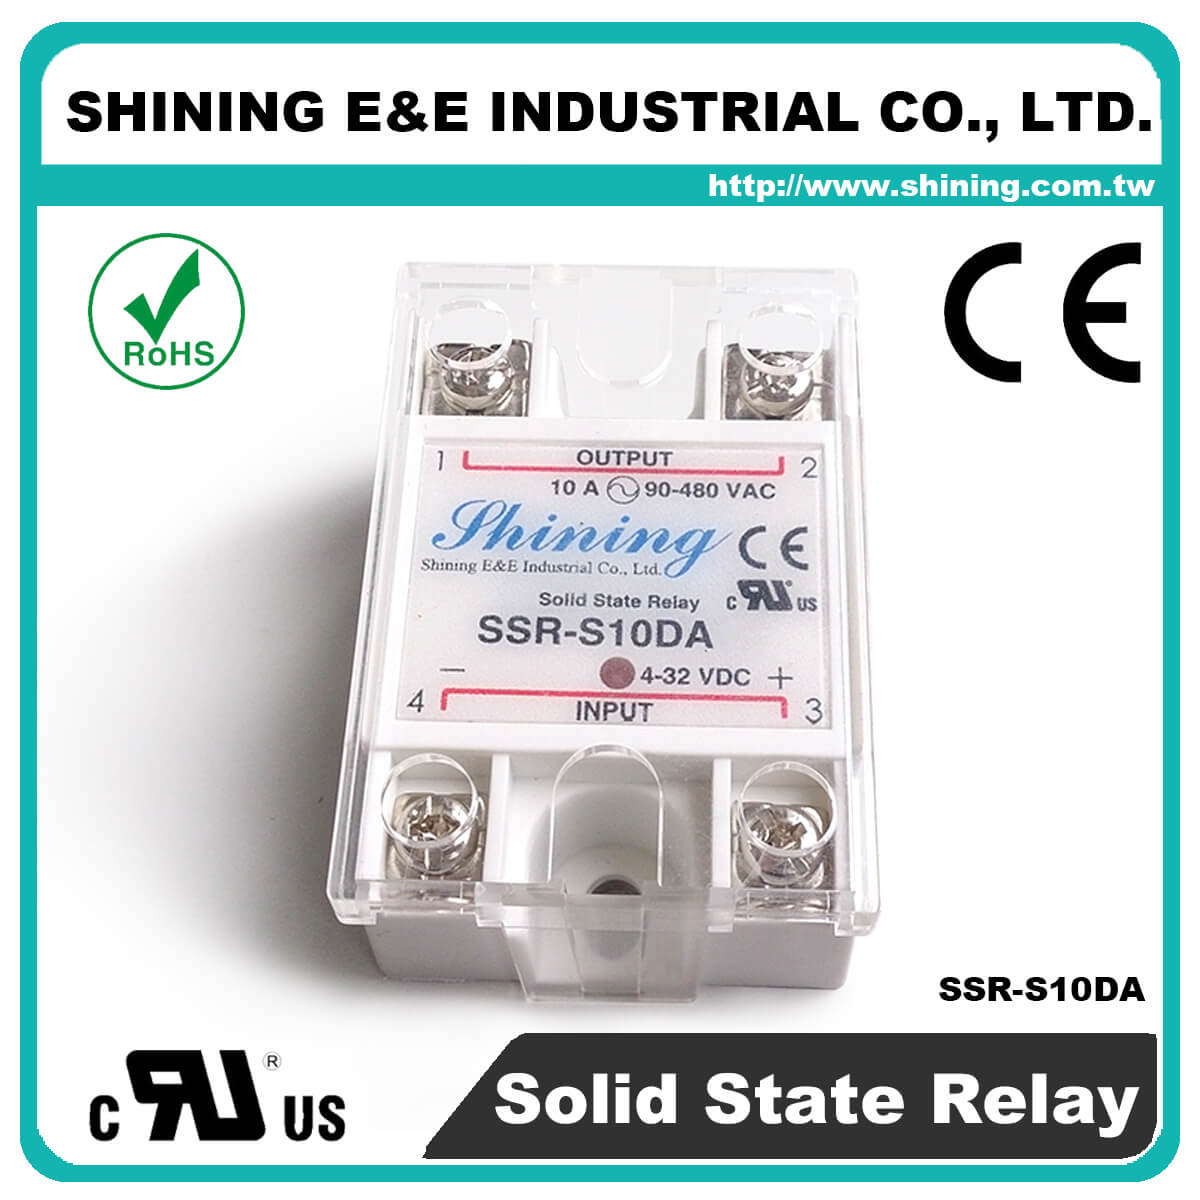 Ssr Sxxda Series Dctoac Single Phase Solid State Relay There Are Dc Relays And Ac S10da To 10a 280vac S